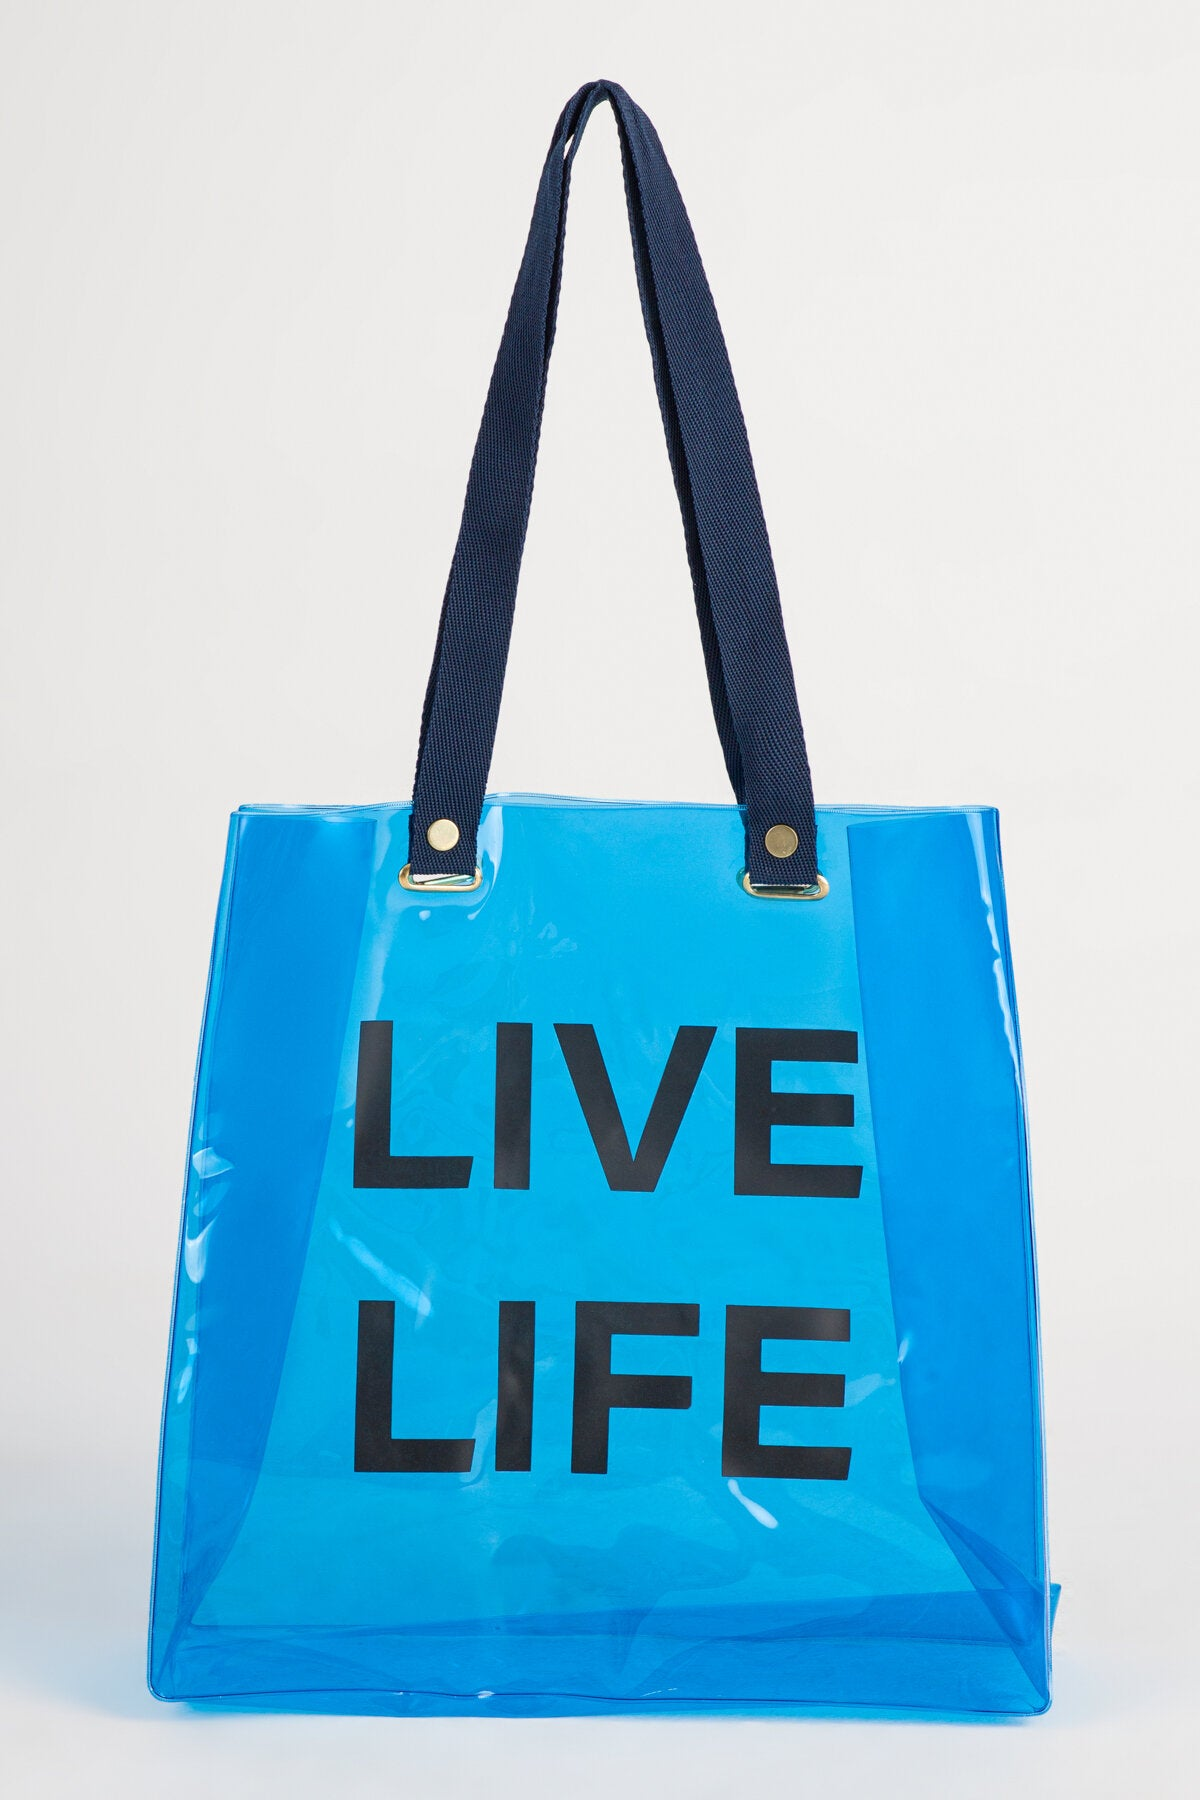 BEACH TOTE IN NEON BLUE